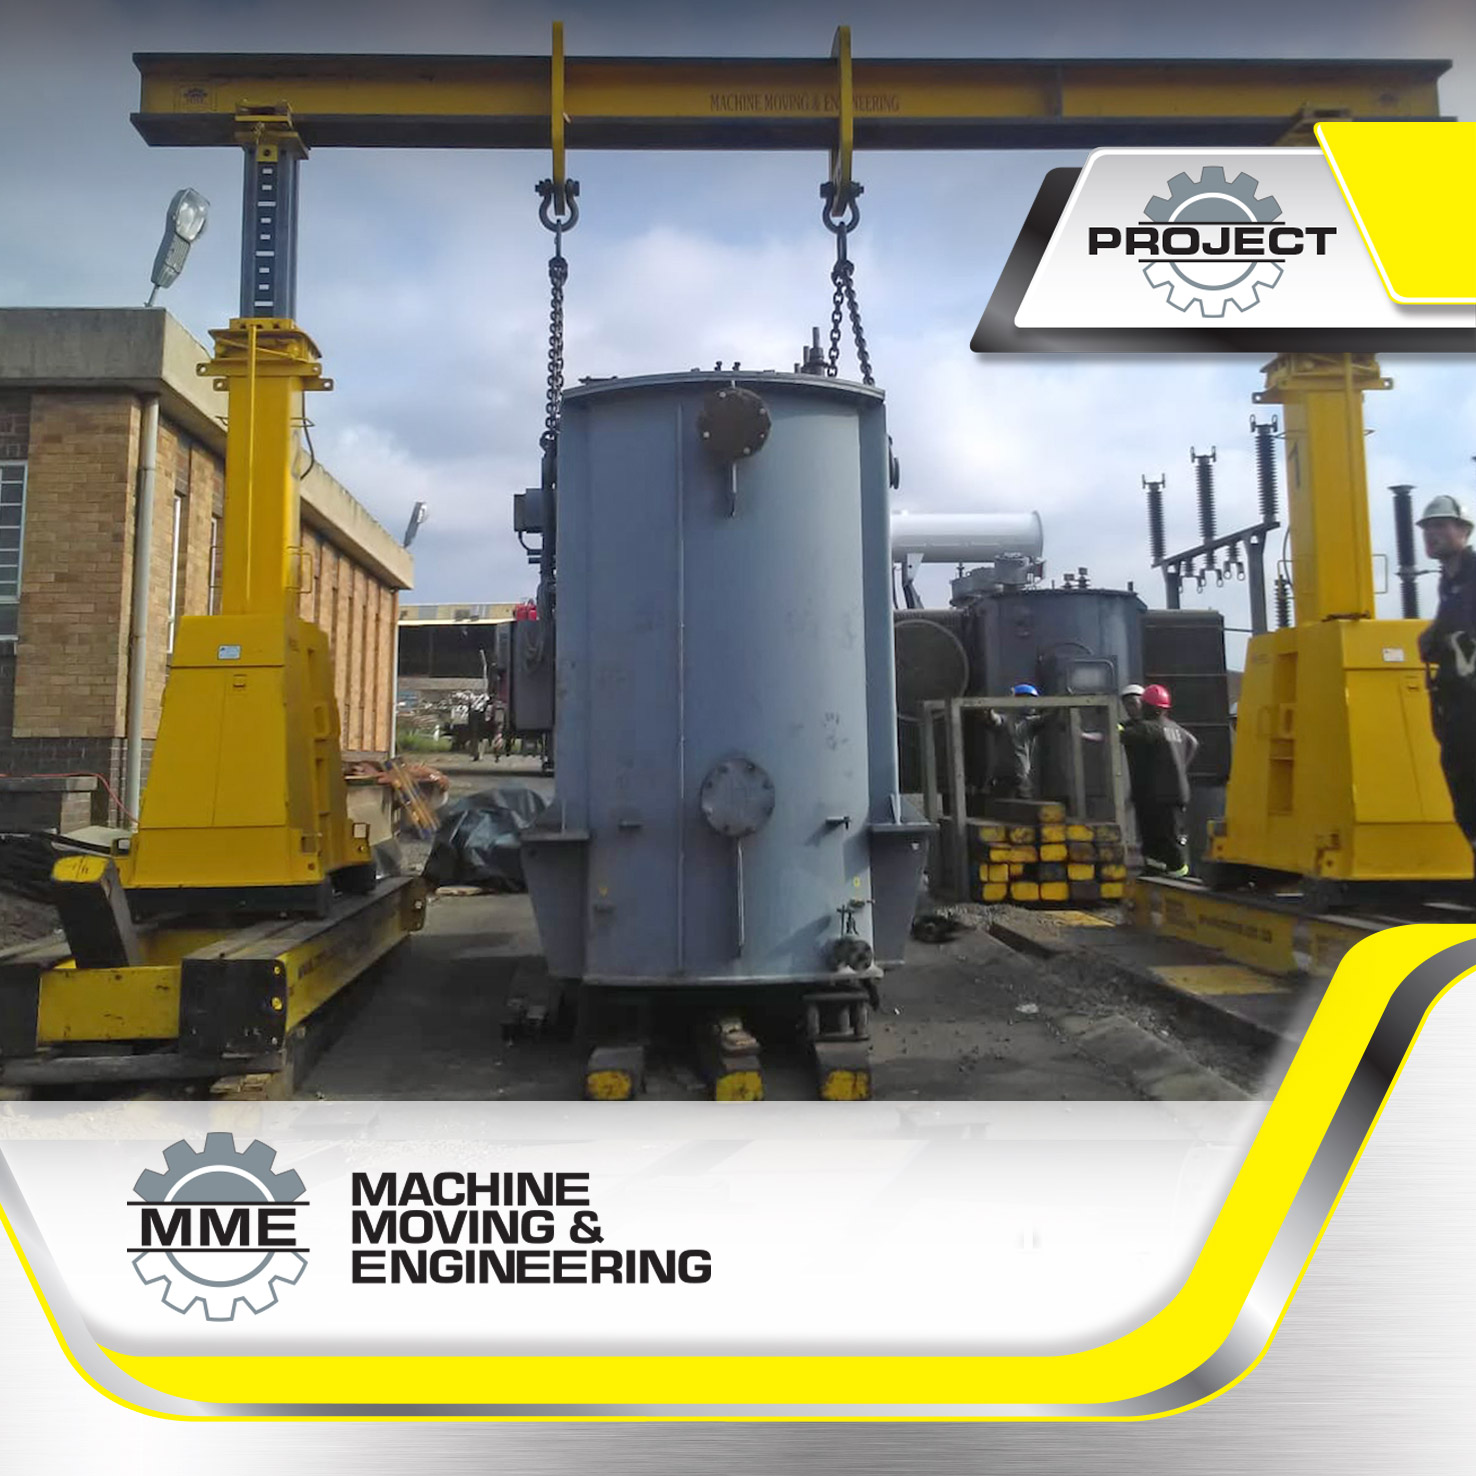 high voltage move mme-projects-mme-machine-moving-engineering-machinery-equipment-gauteng-kwazulu-natal-south-africa-safety